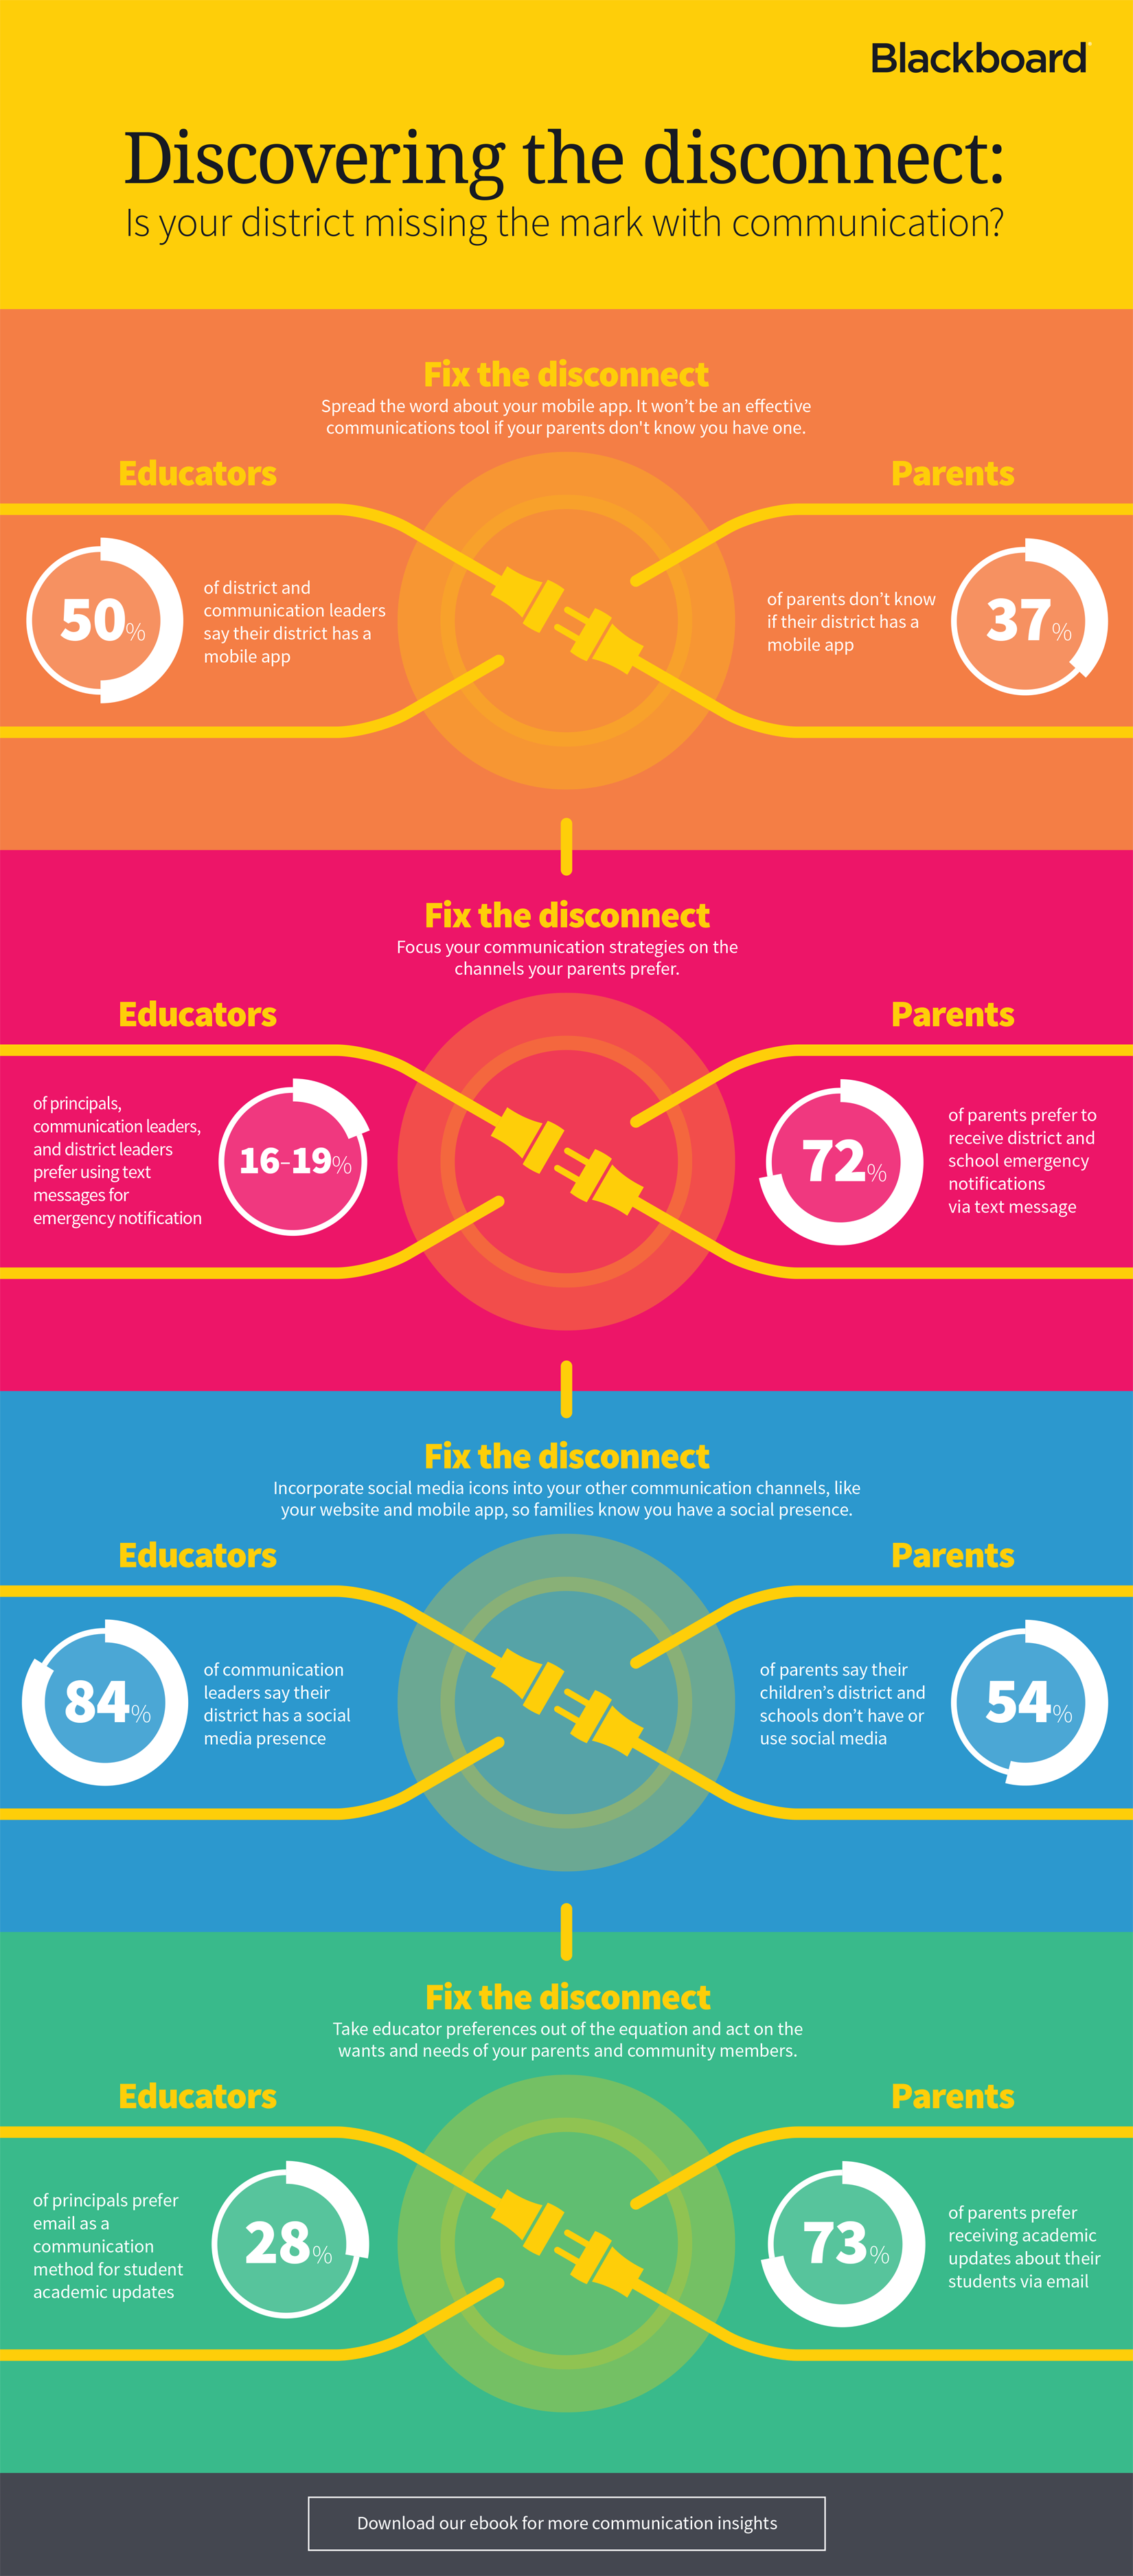 Infographic on discovering the disconnect in K-12 school communication